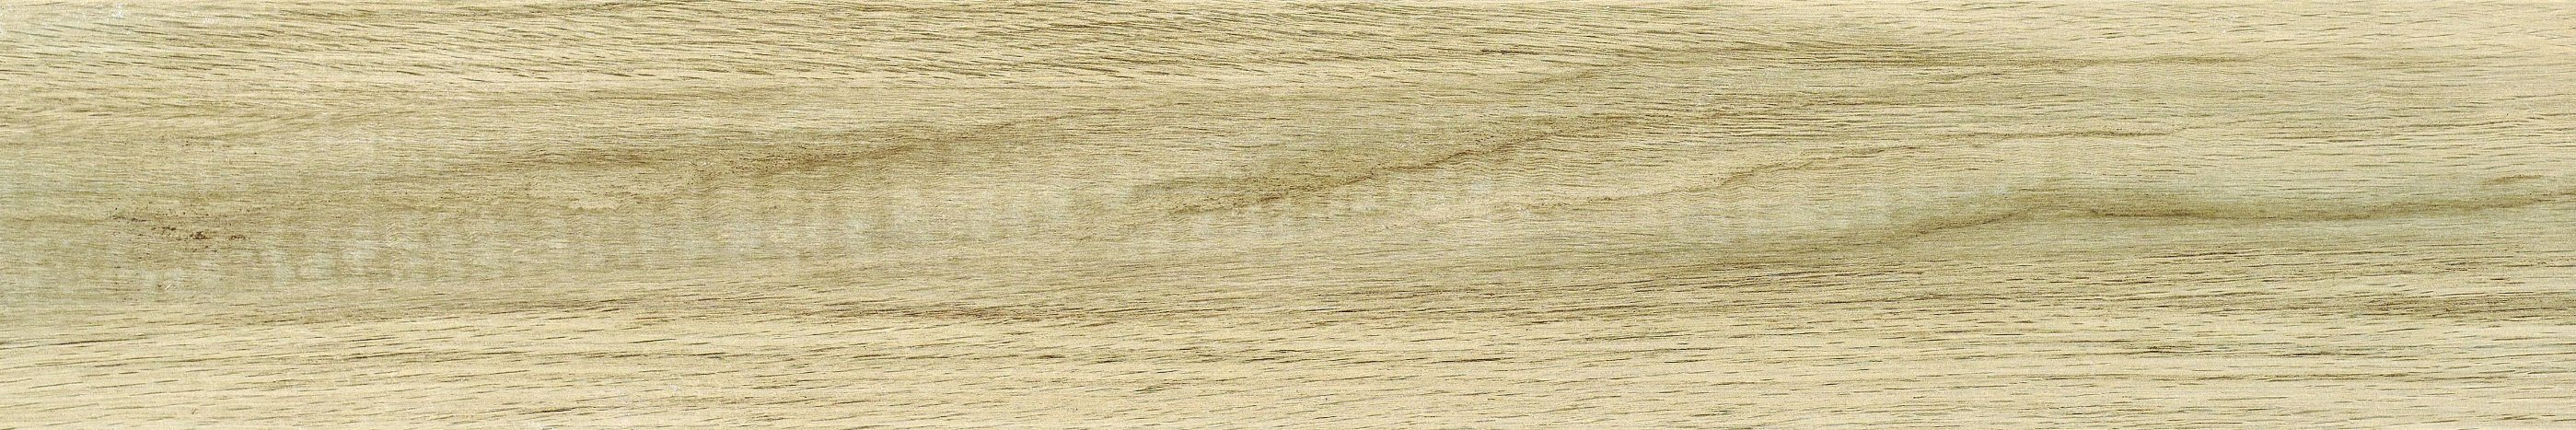 China 200X1200mm Wood Color Beige Ceramic Floor and Wall Tile Photos ...